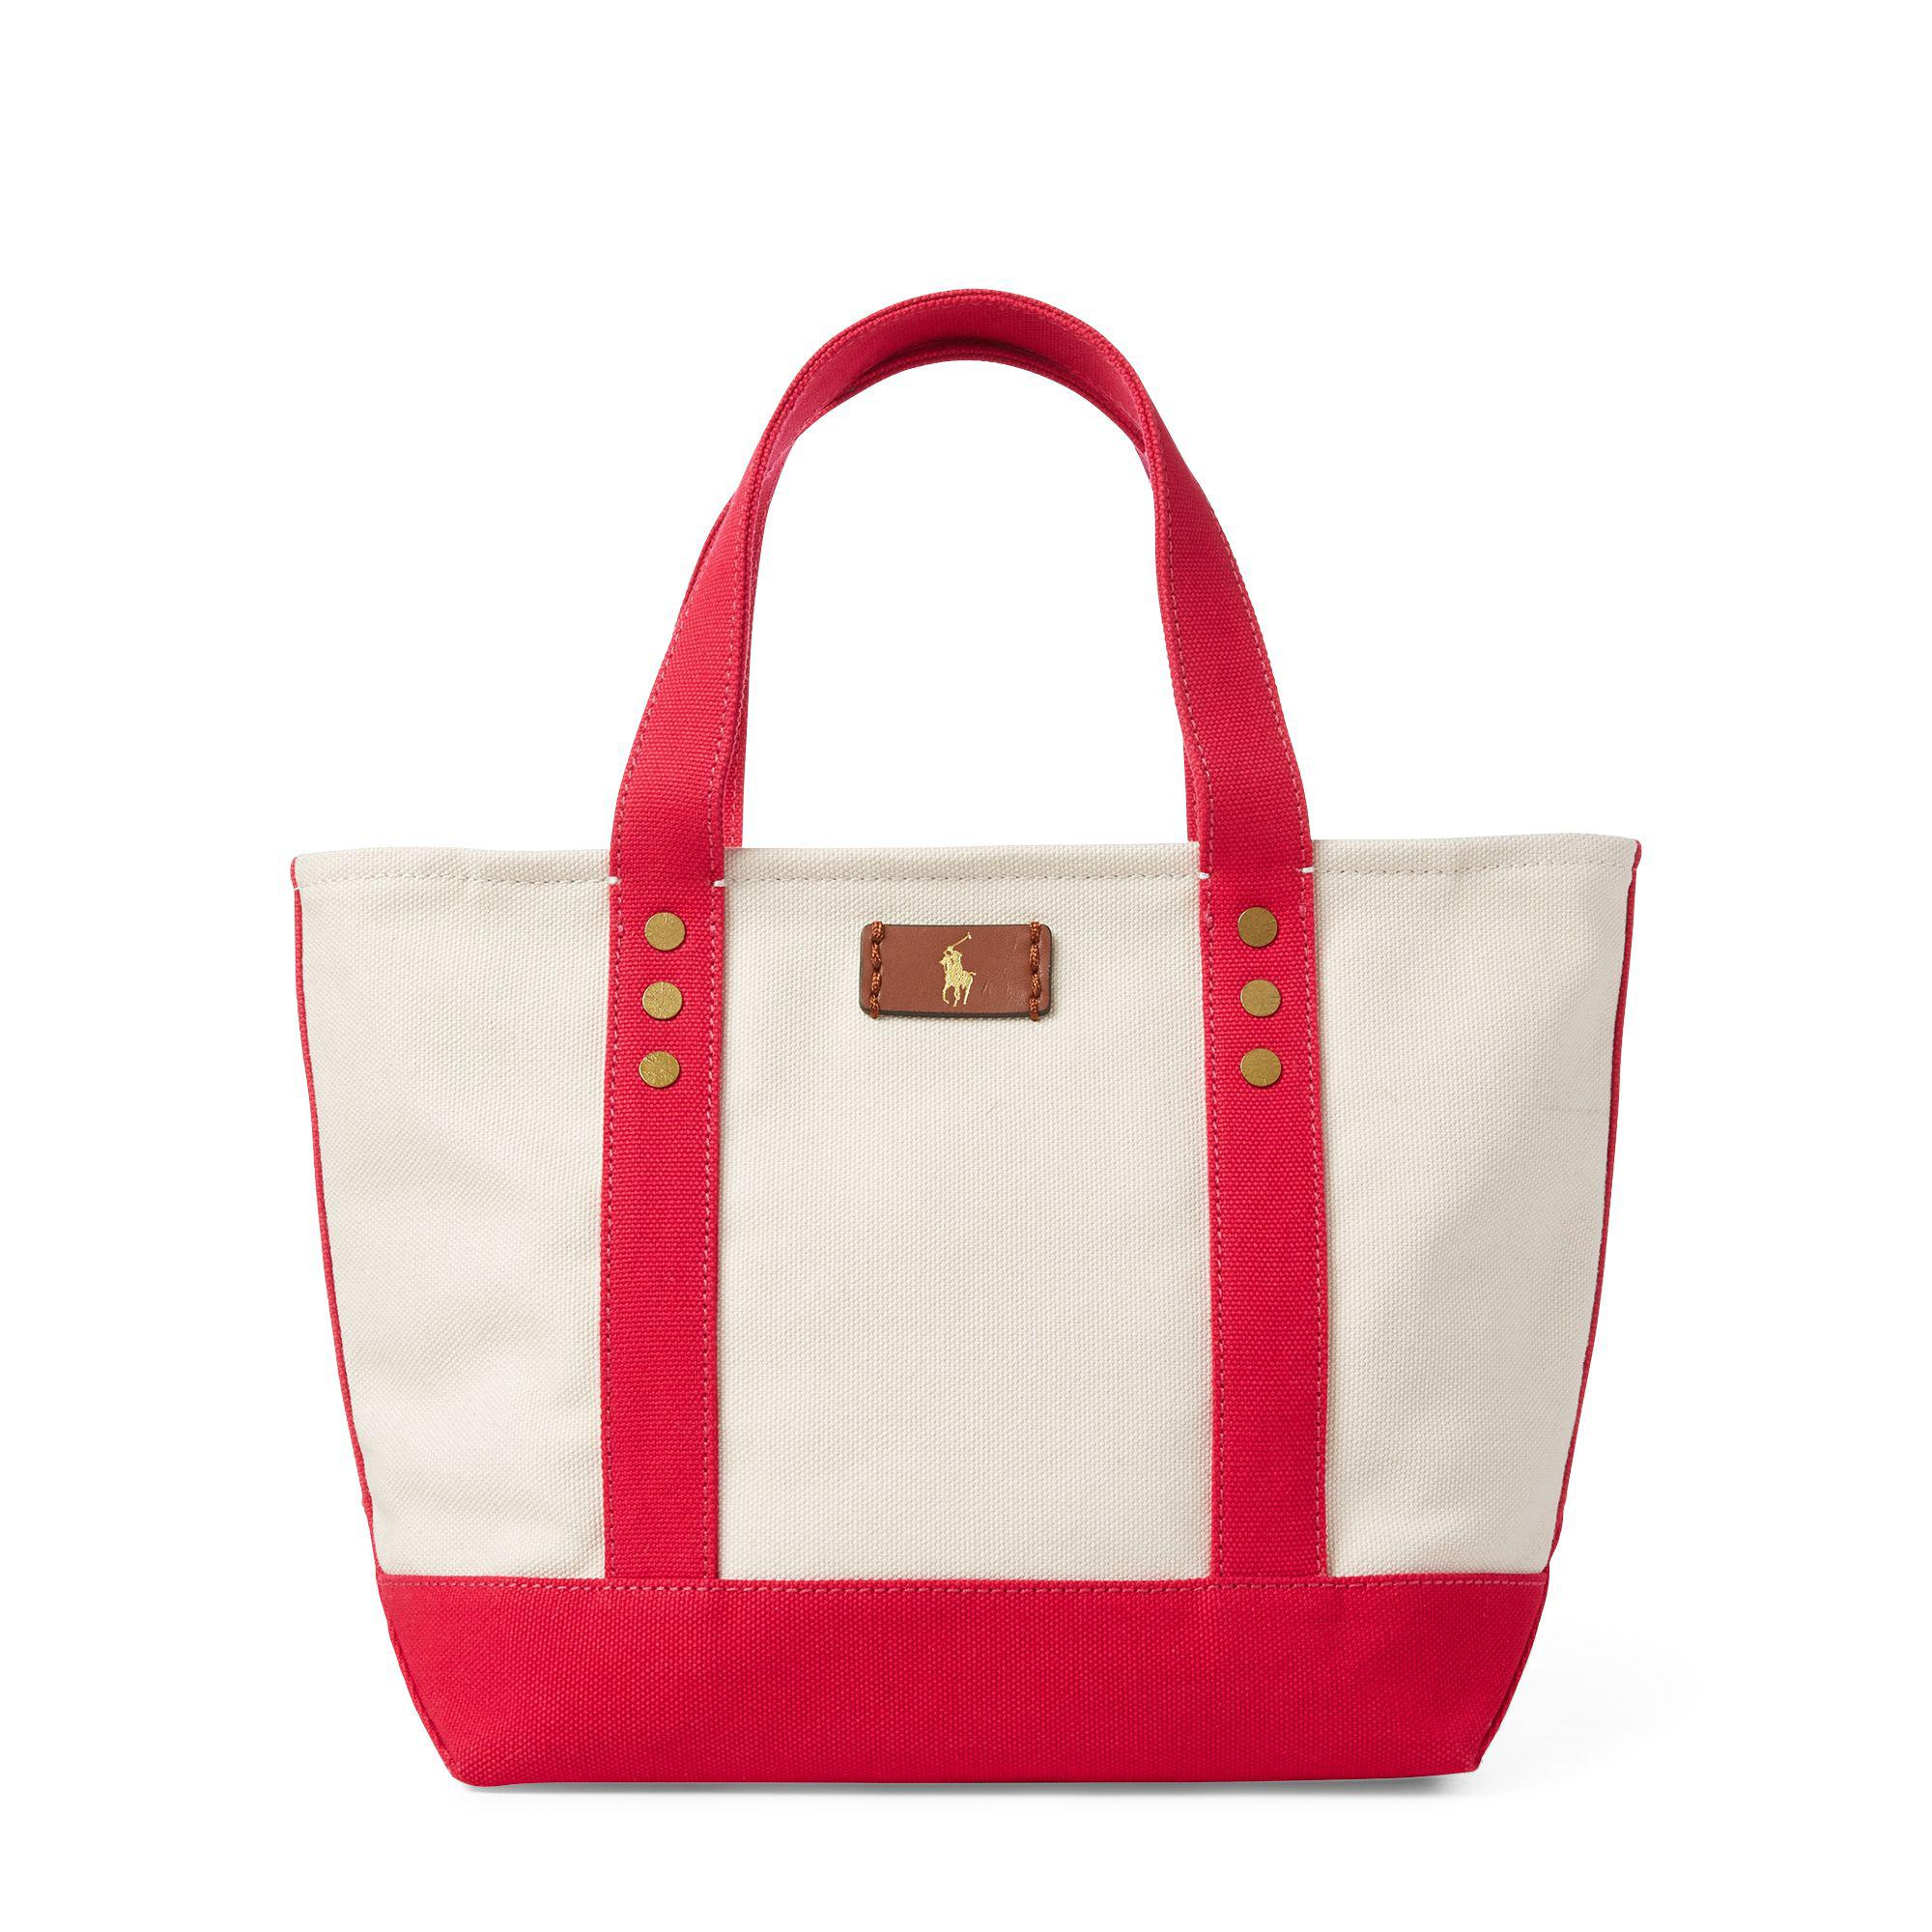 e1af86b549 Lyst - Polo Ralph Lauren Canvas Mini Tote Bag in Red